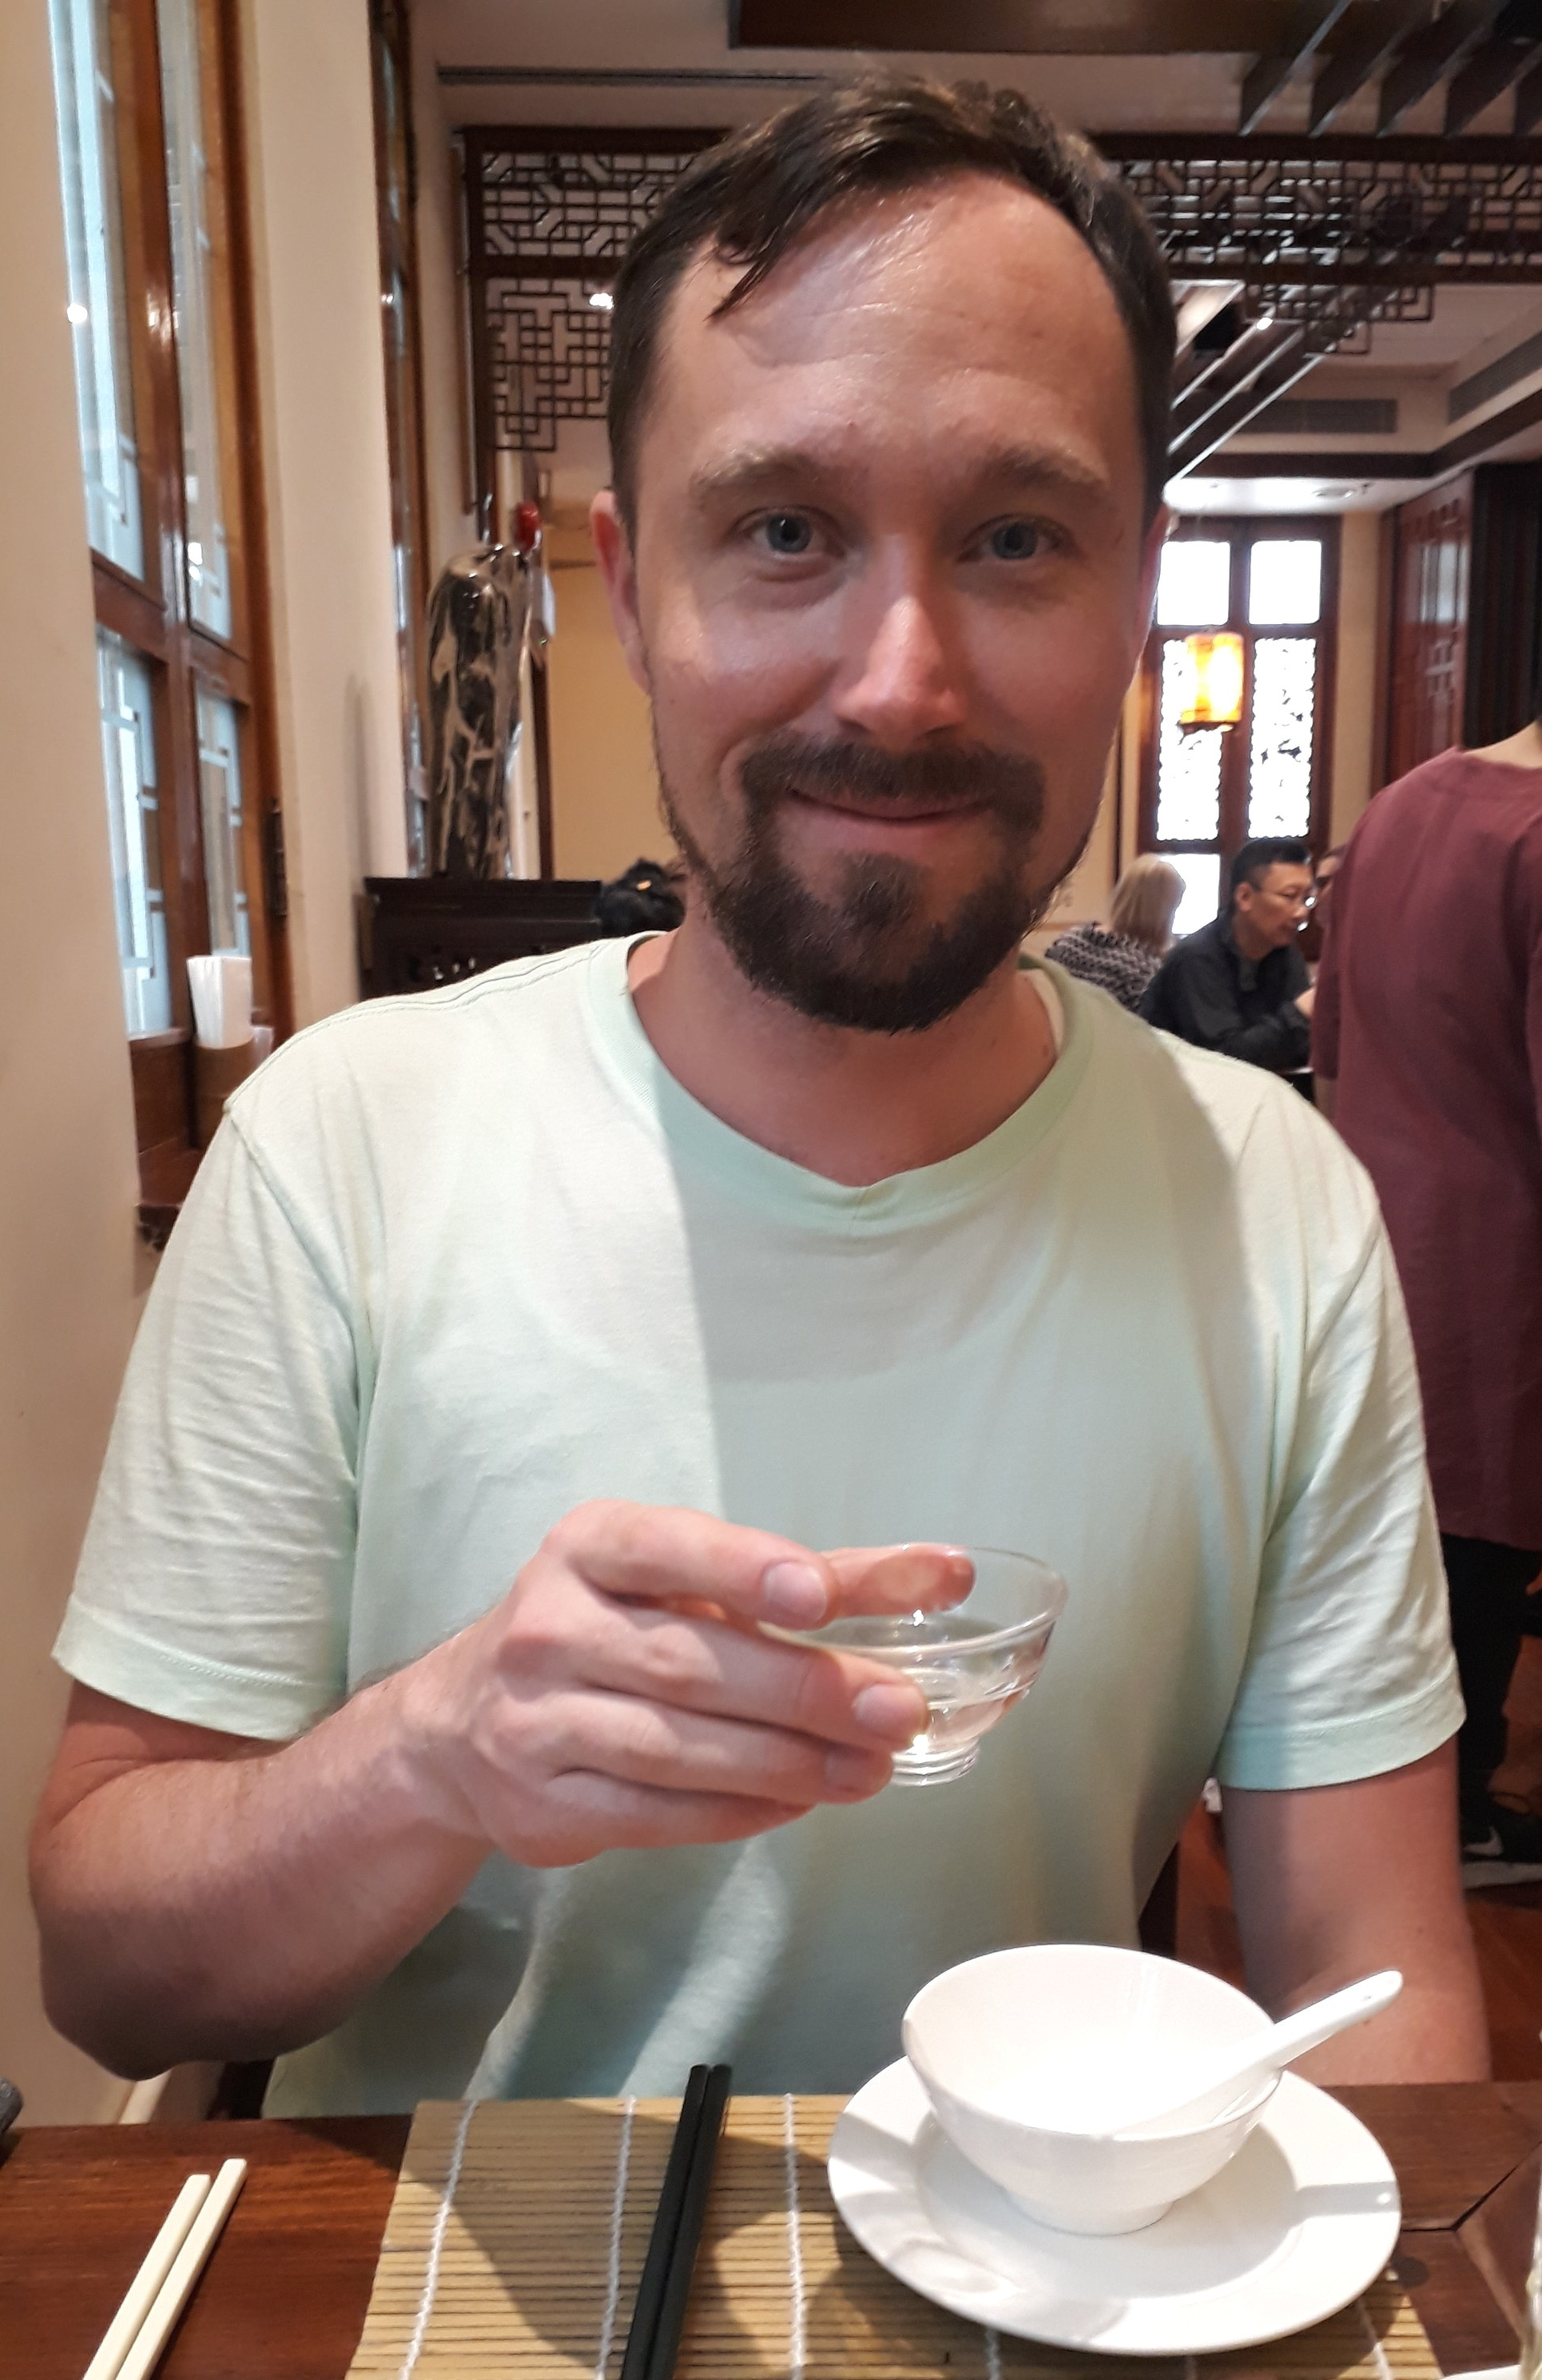 Tea time! Also, this is me after traveling from Taipei and walking around Hong Kong in hot weather :)